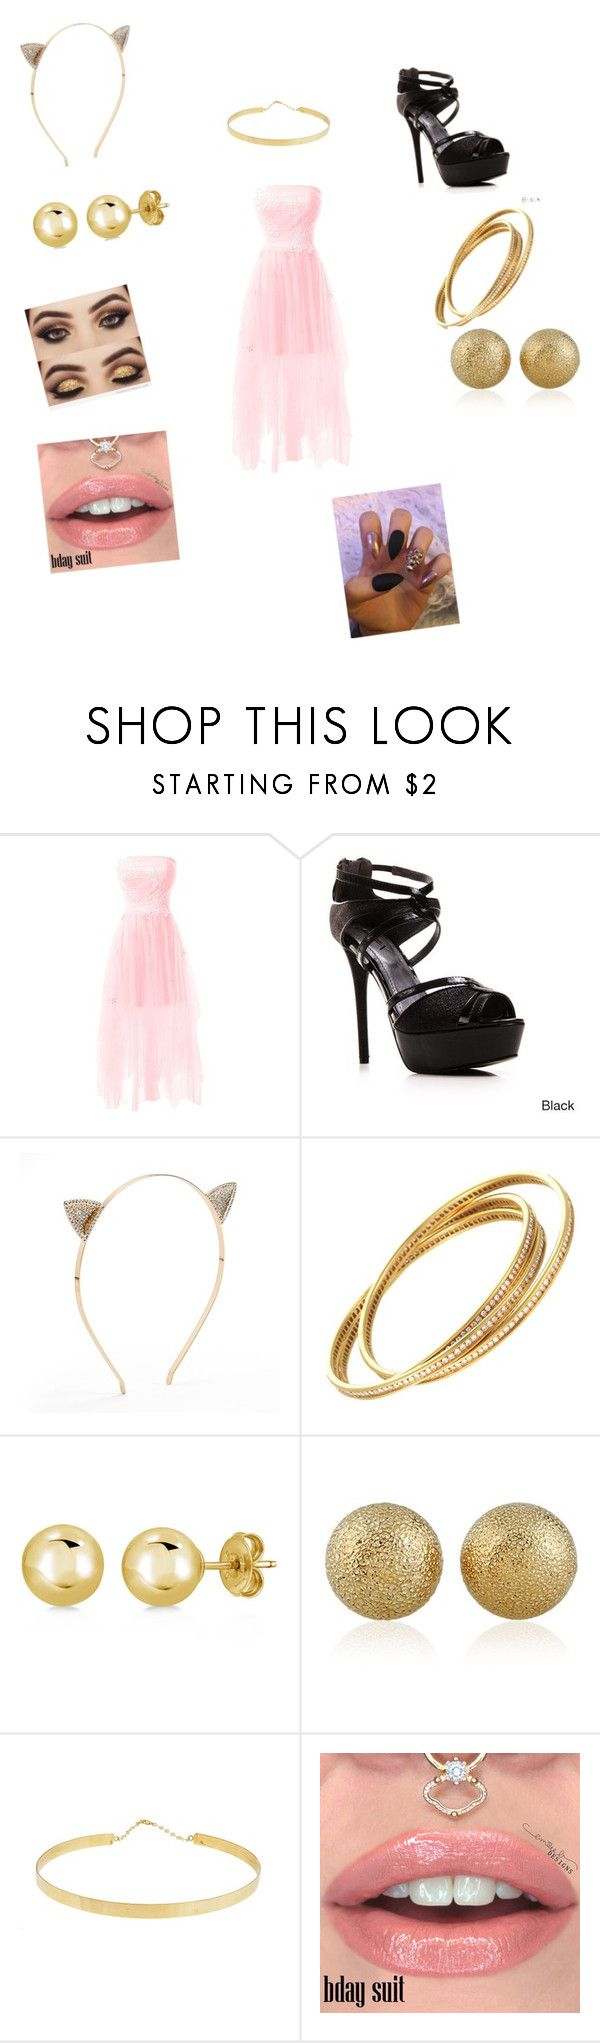 """""""llorar lloviendo"""" by vyesica-yv on Polyvore featuring Gomax, Apt. 9, Cartier, BERRICLE and Lana Jewelry"""